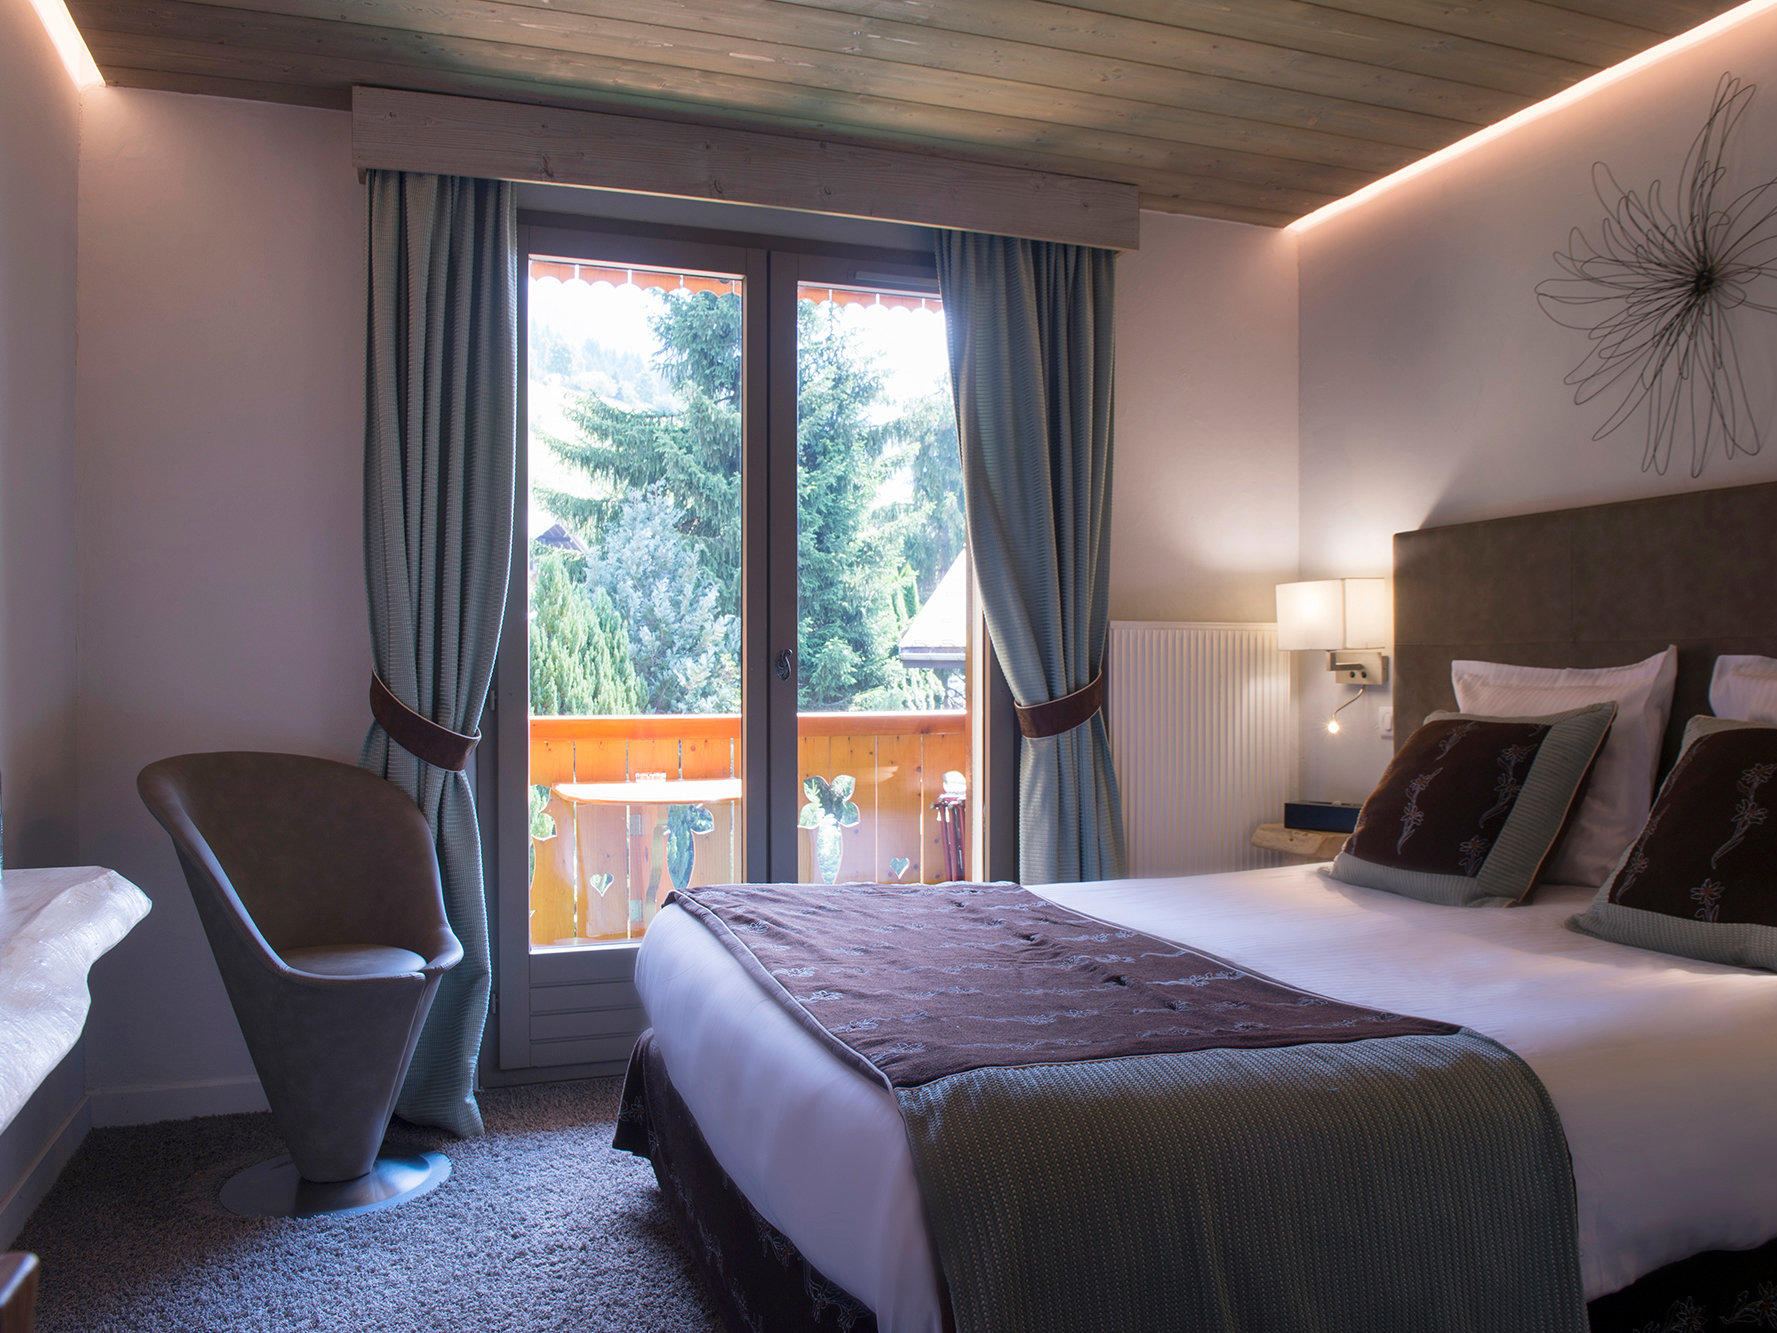 Superior Double Room at Hotel Gentianettes, The Originals Relais